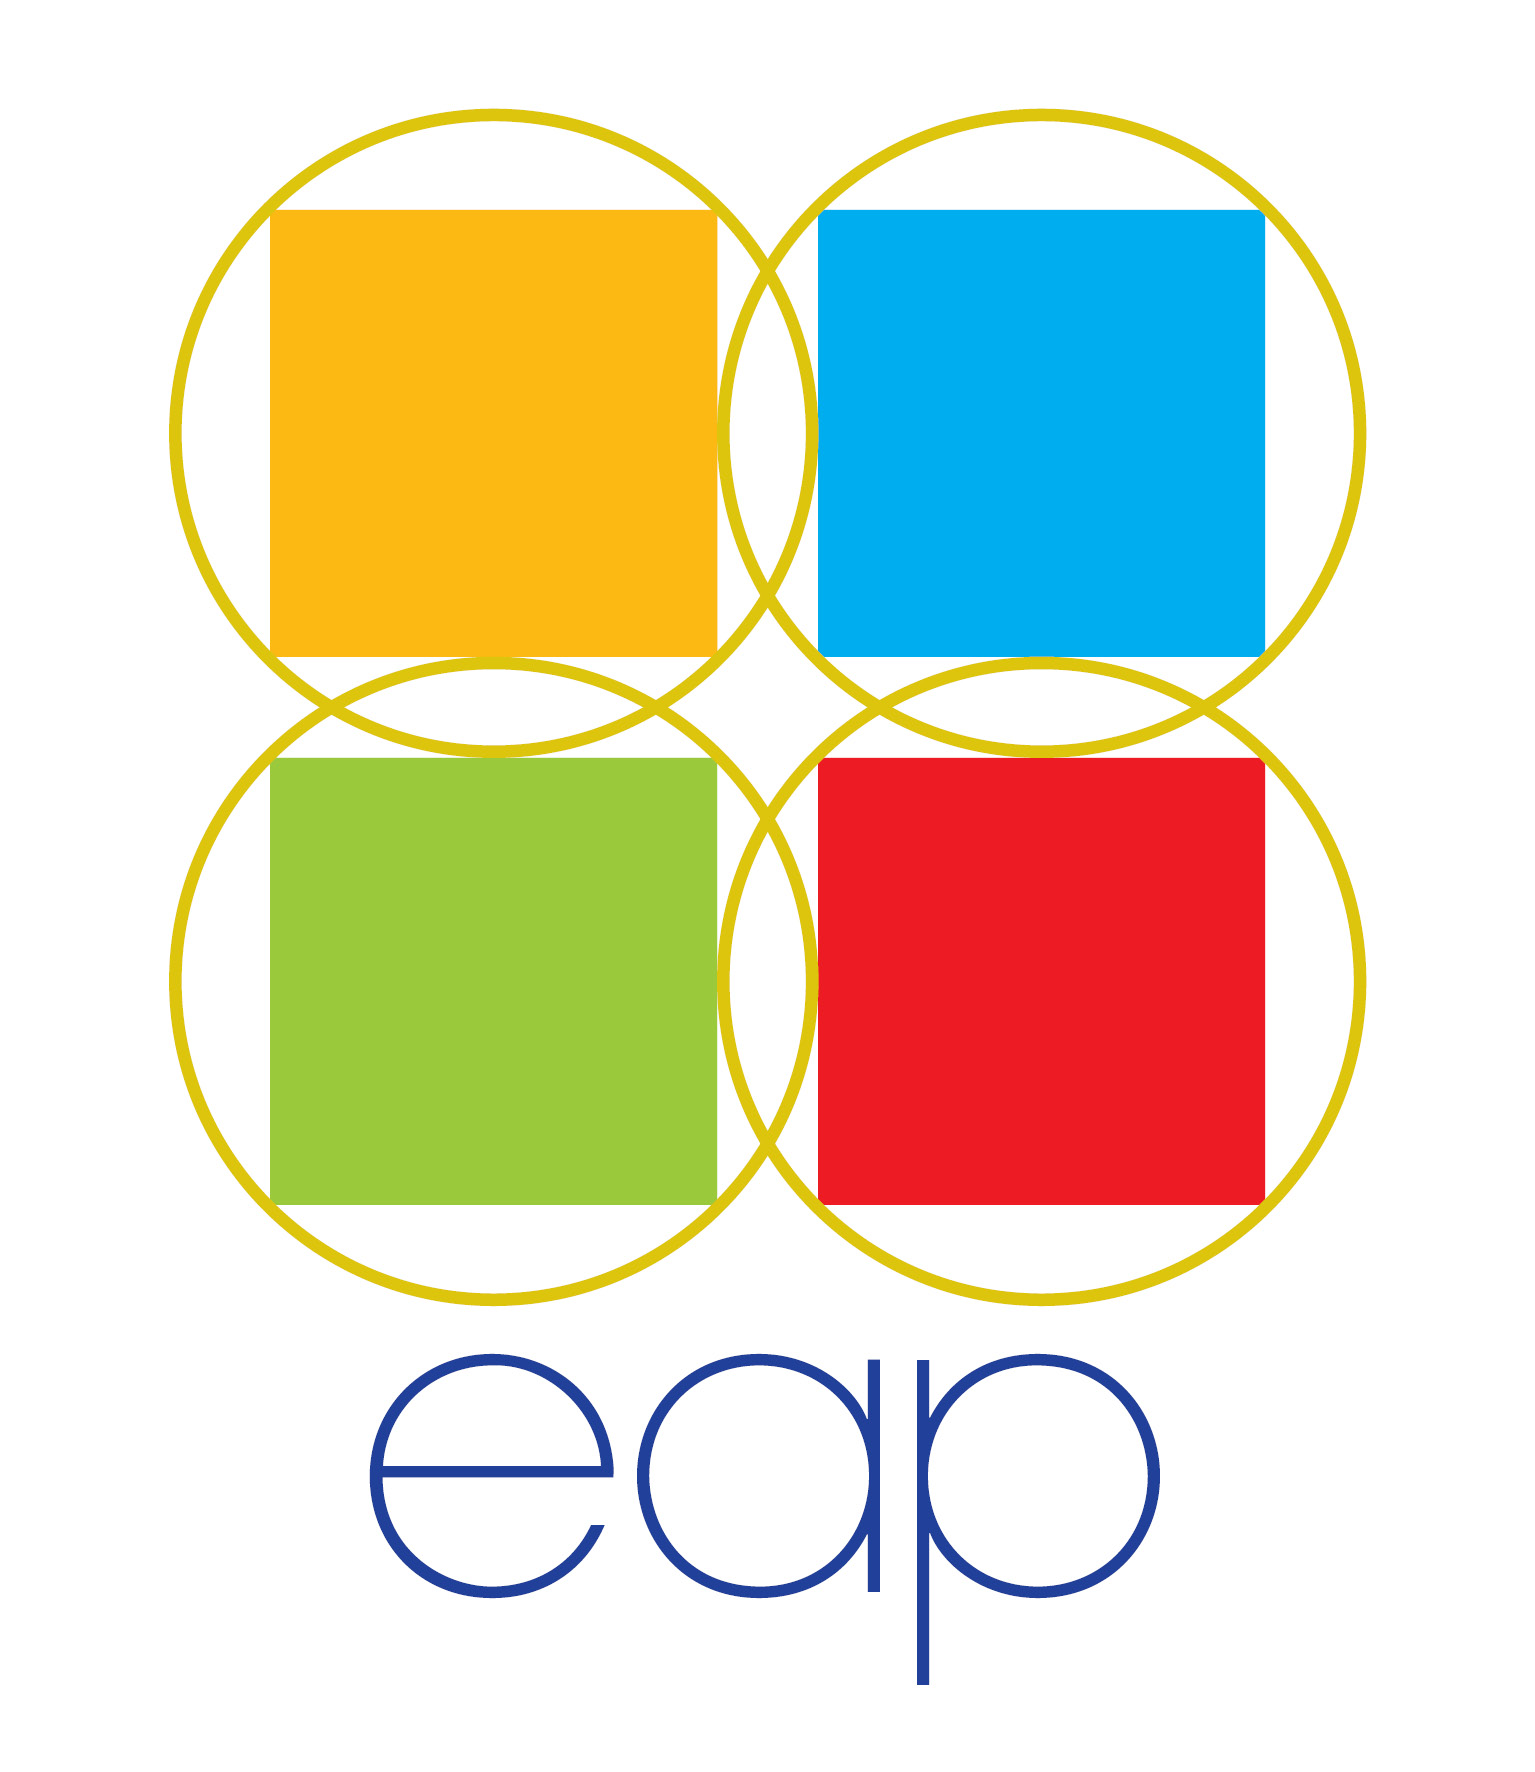 Enhances Awareness Program (EAP)